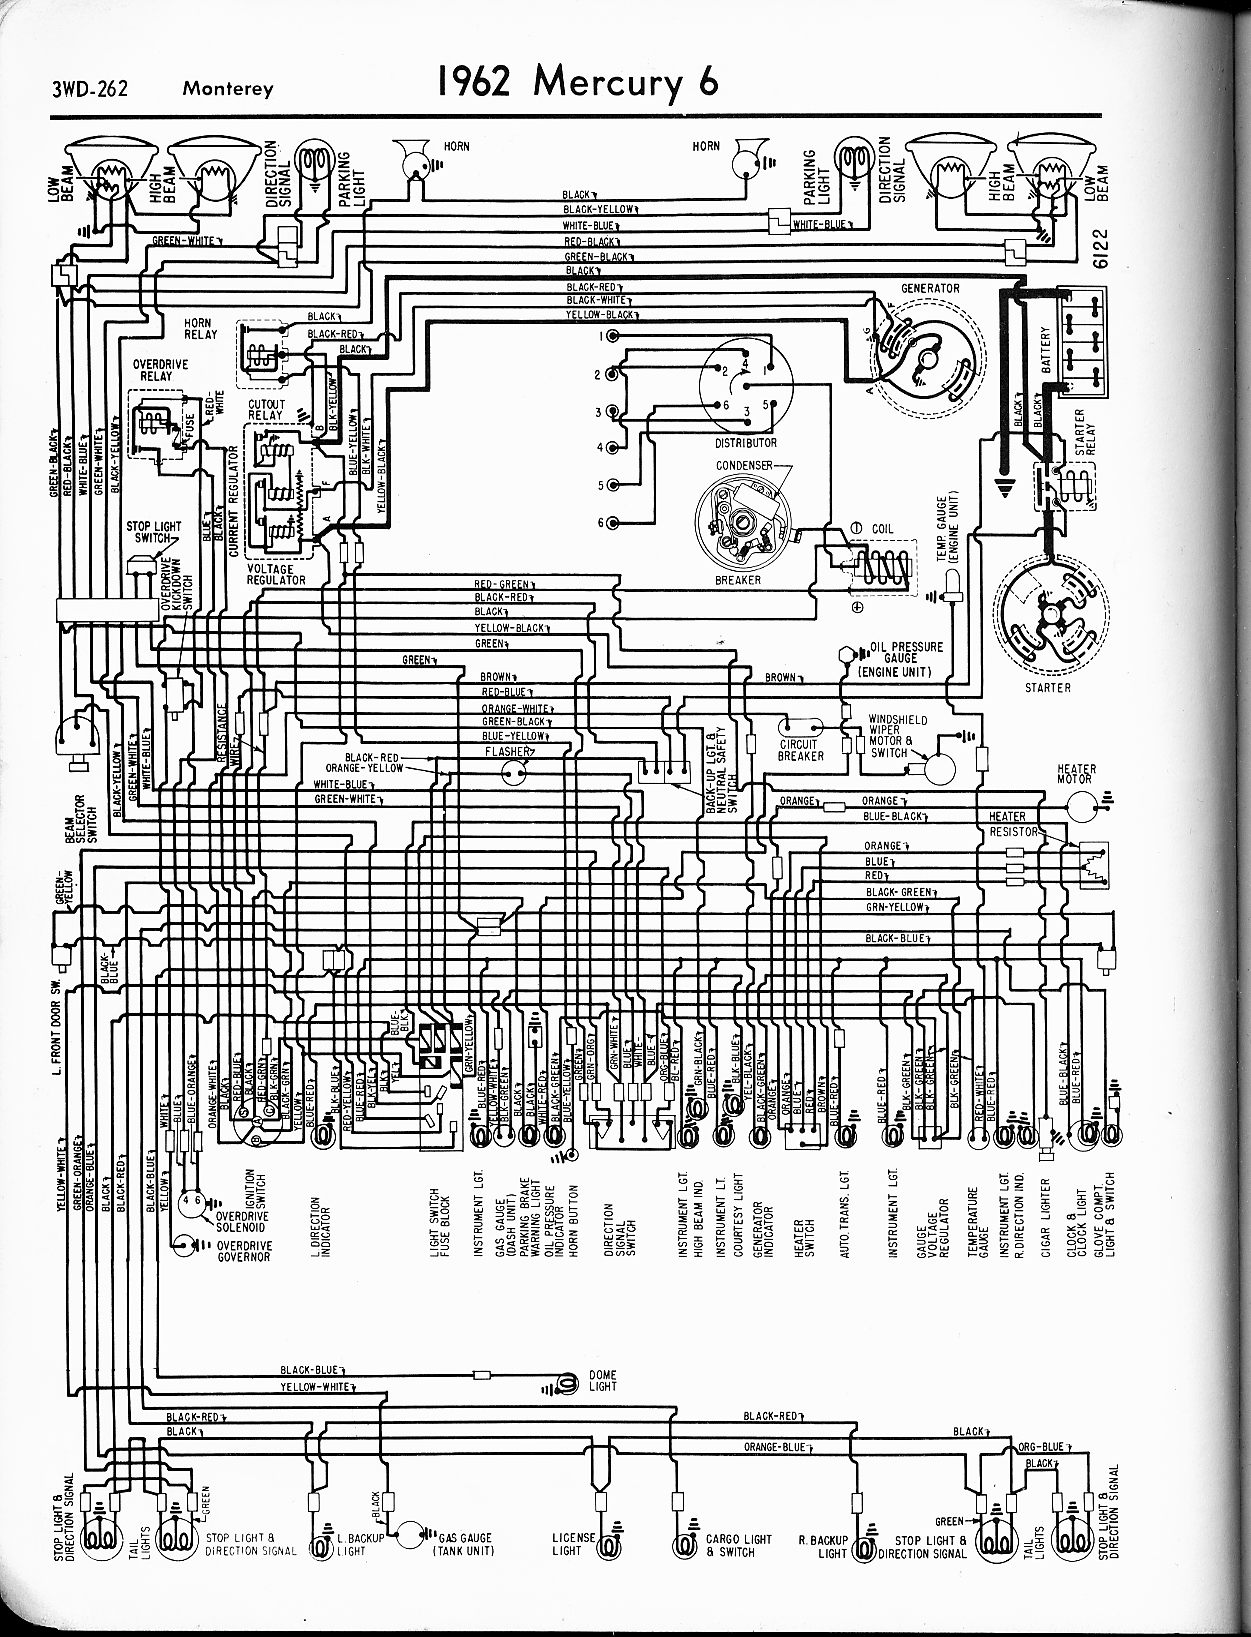 1965 Lincoln Welder Wiring Diagram Starter Guide And 225 Arc Mercury Diagrams The Old Car Manual Project Rh Oldcarmanualproject Com Forney